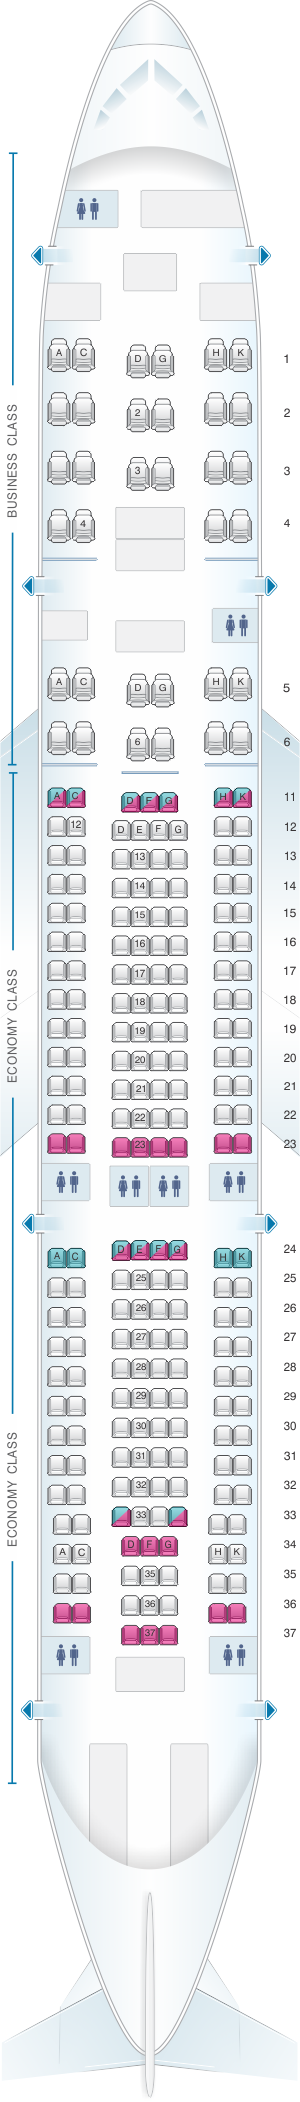 Seat map for Aeroflot Russian Airlines Airbus A330 200